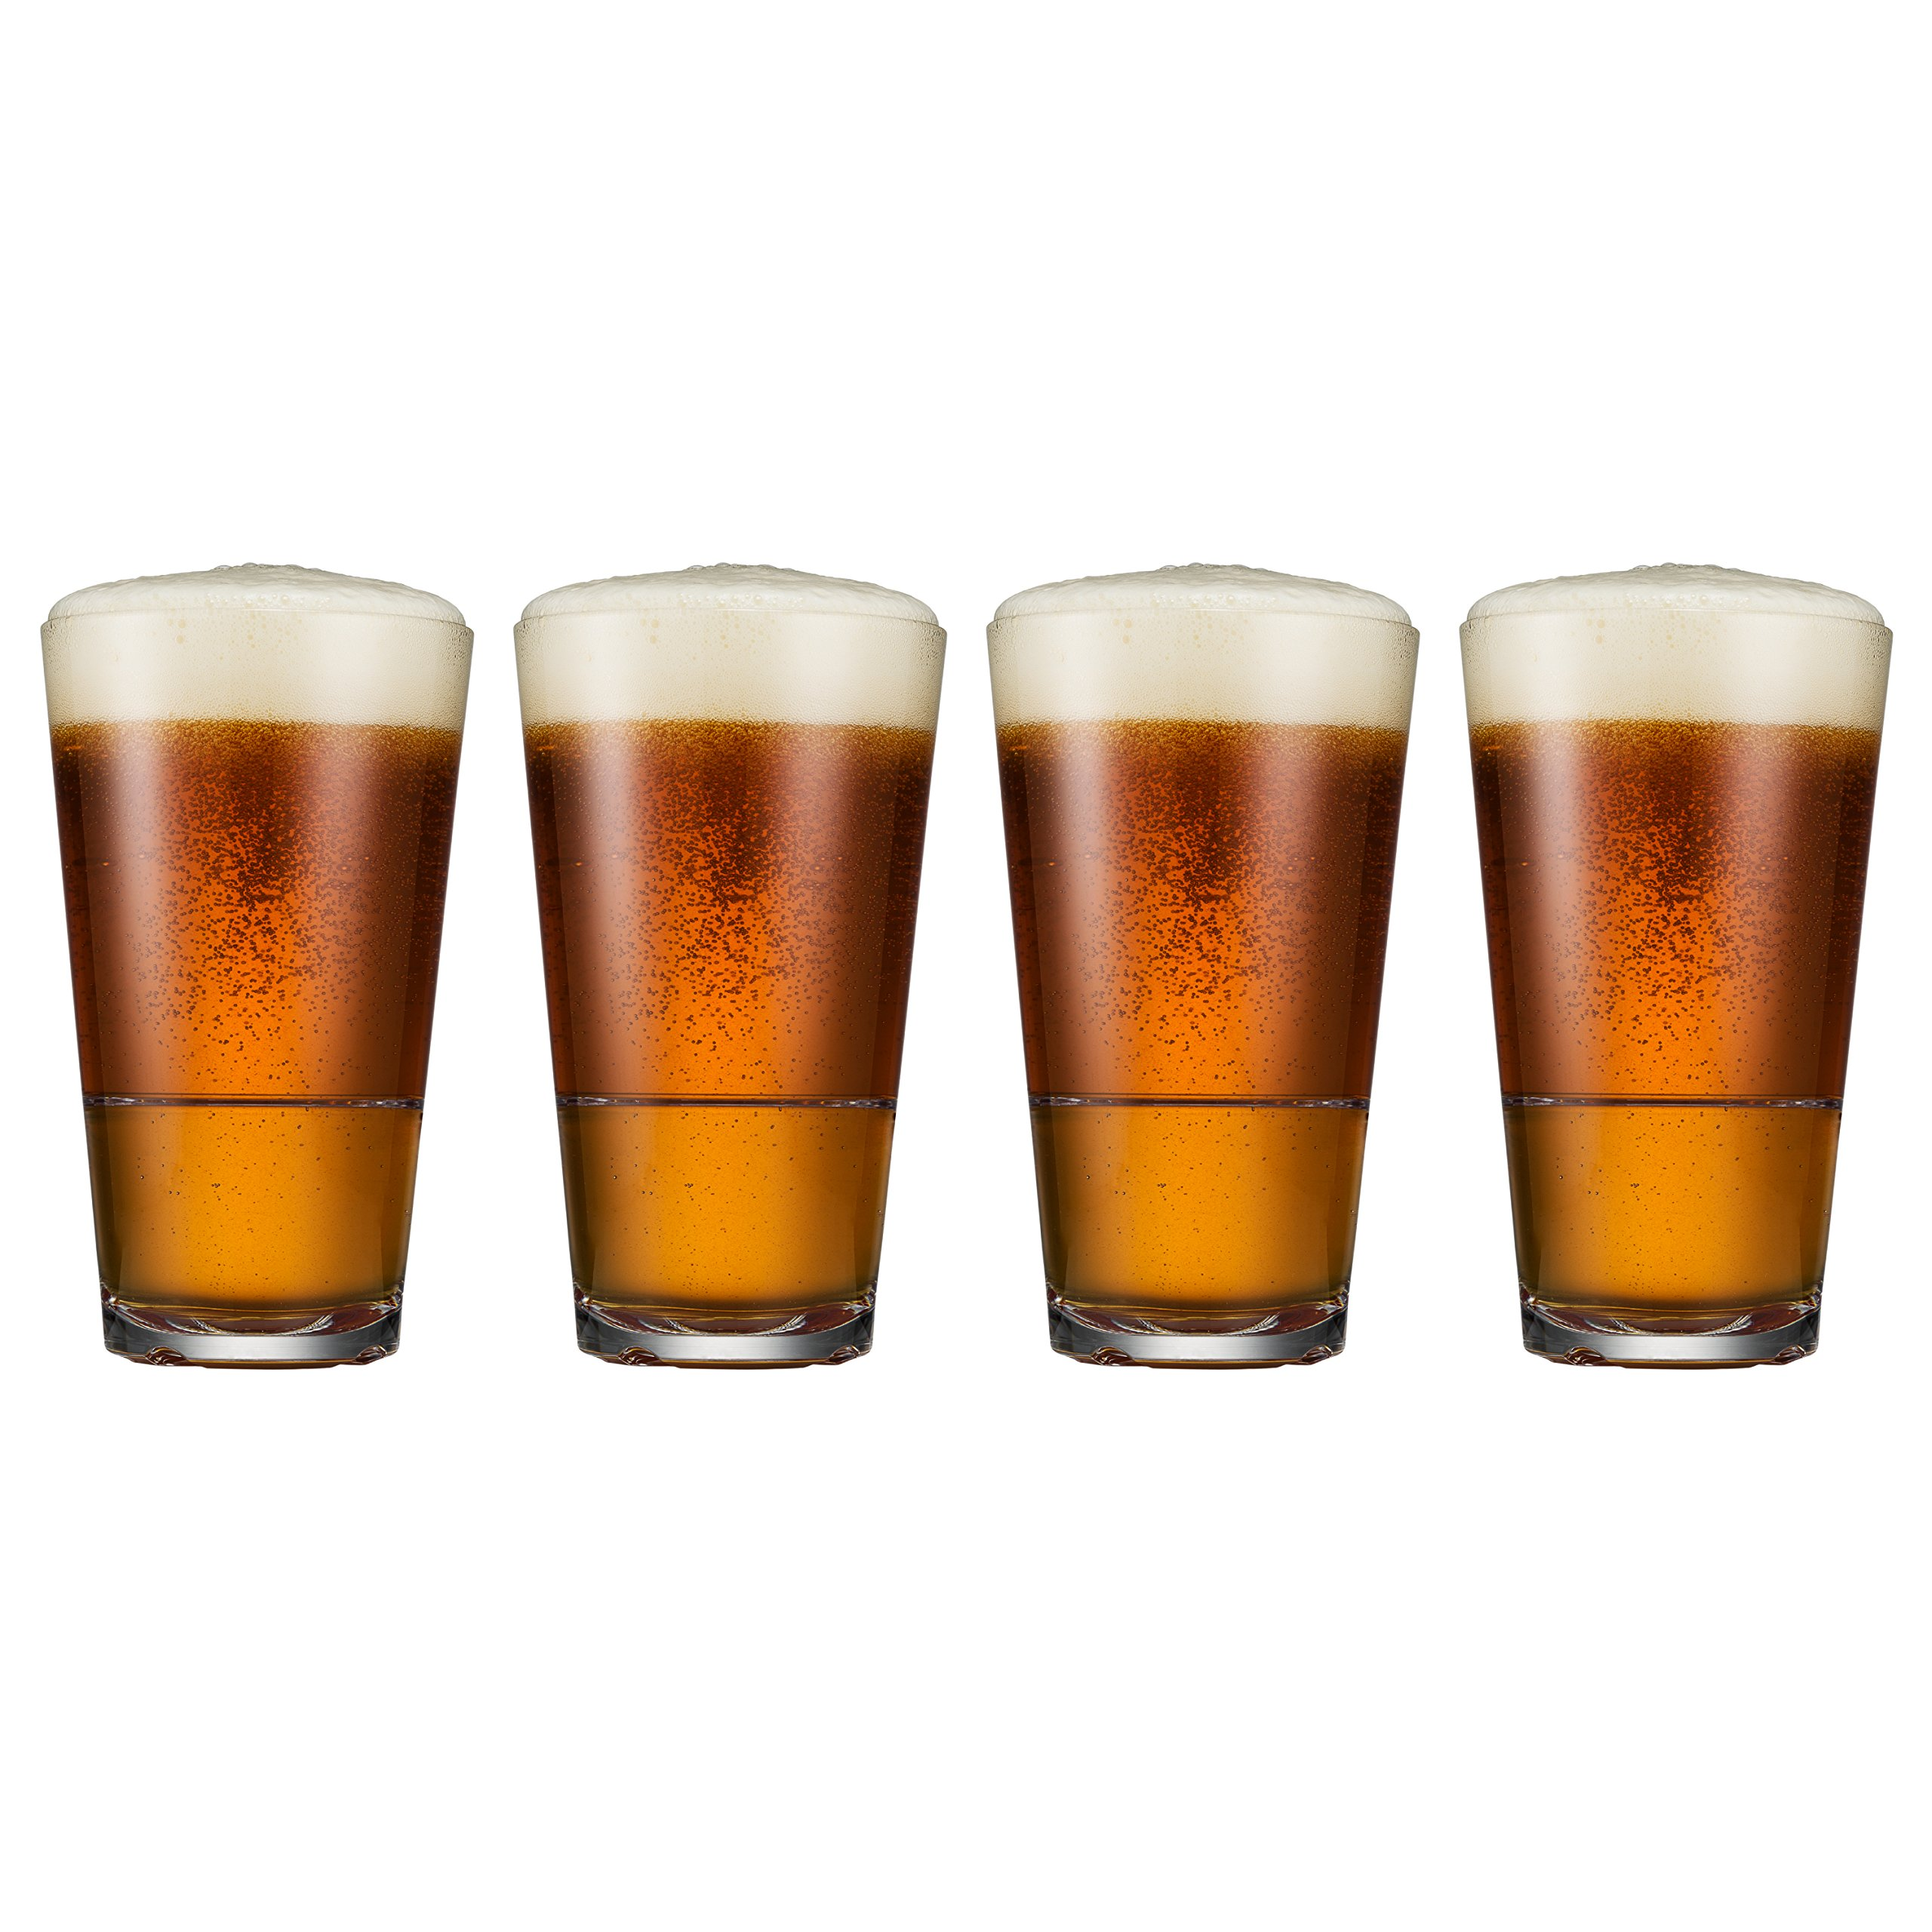 Drinique CAL-PT-CLR-4 Caliber Pint Unbreakable Tritan Beer Glasses, 16 oz. (Set of 4), Clear